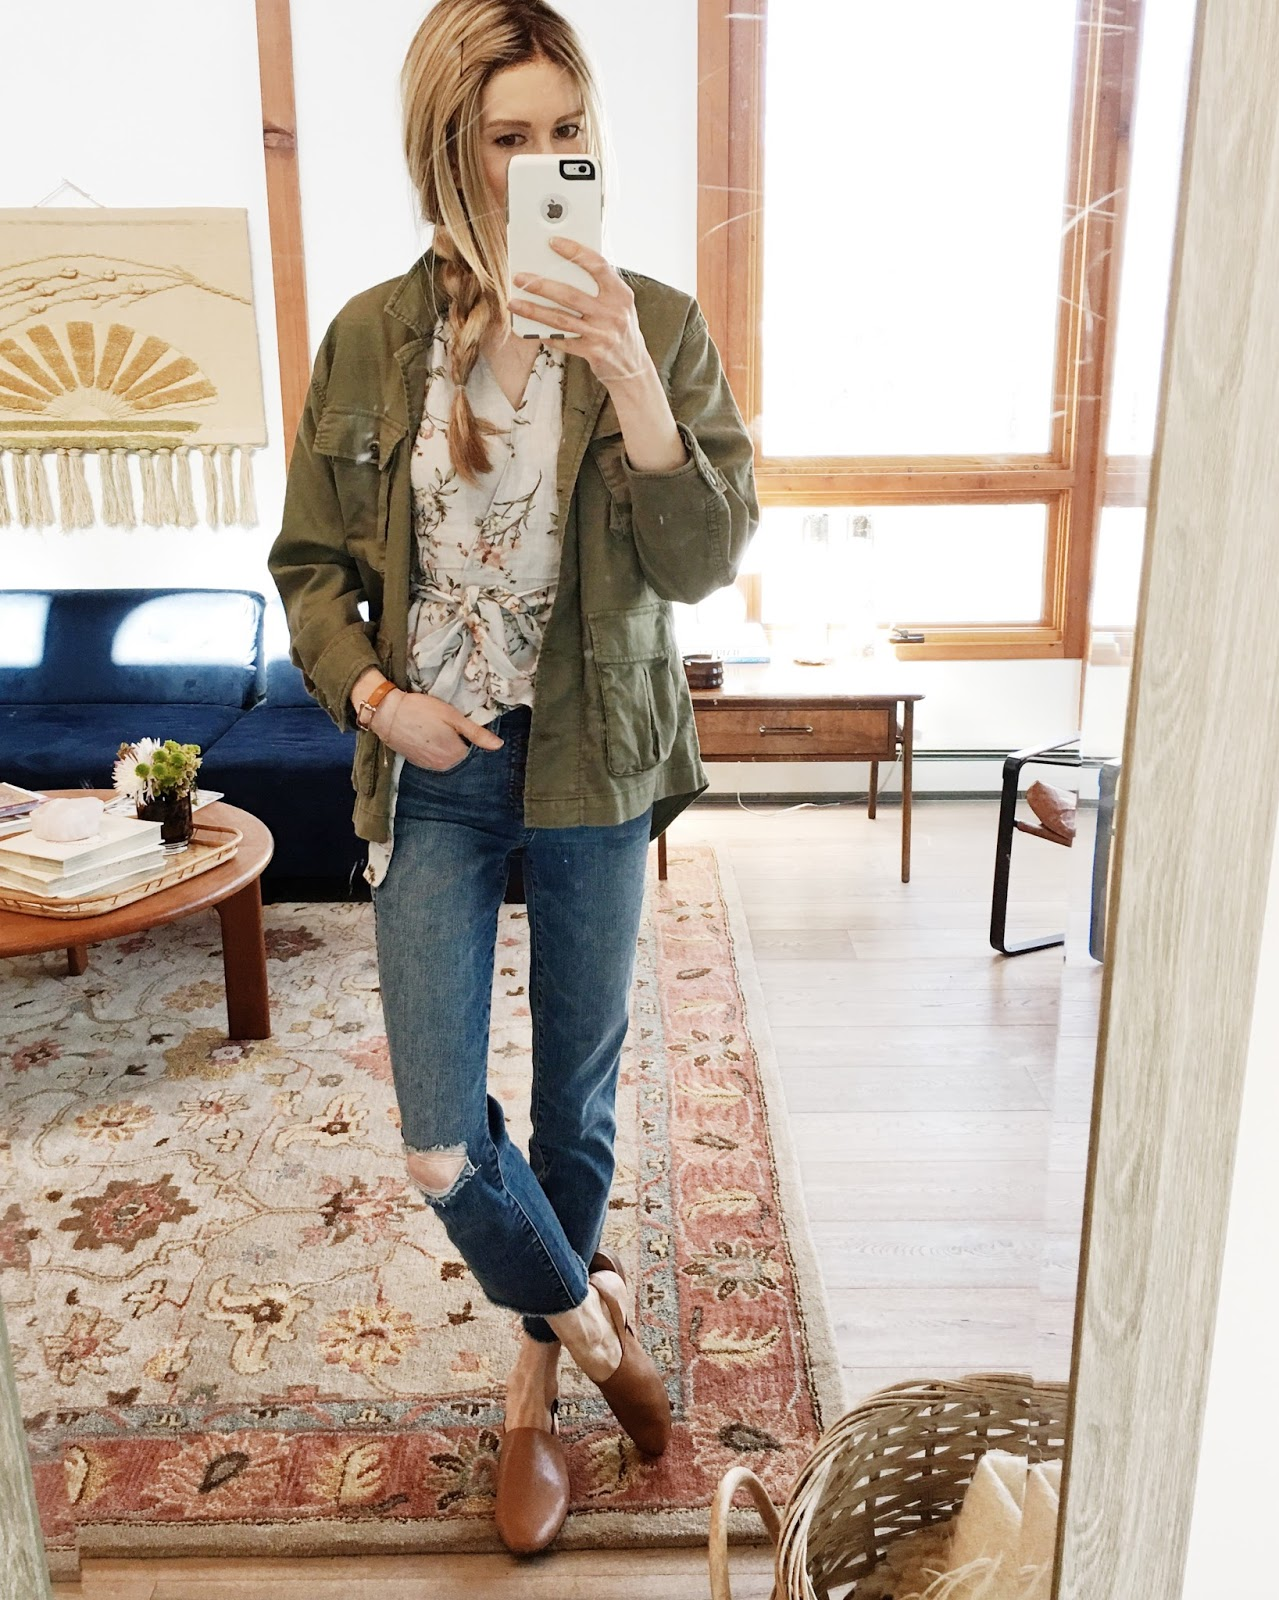 Blouse: Zara (here) // Jacket: The Great (here, runs big) // Jeans: J.Crew  (here, runs true to size) // Shoes: Madewell (similar here) // Bracelet:  Hermes ...